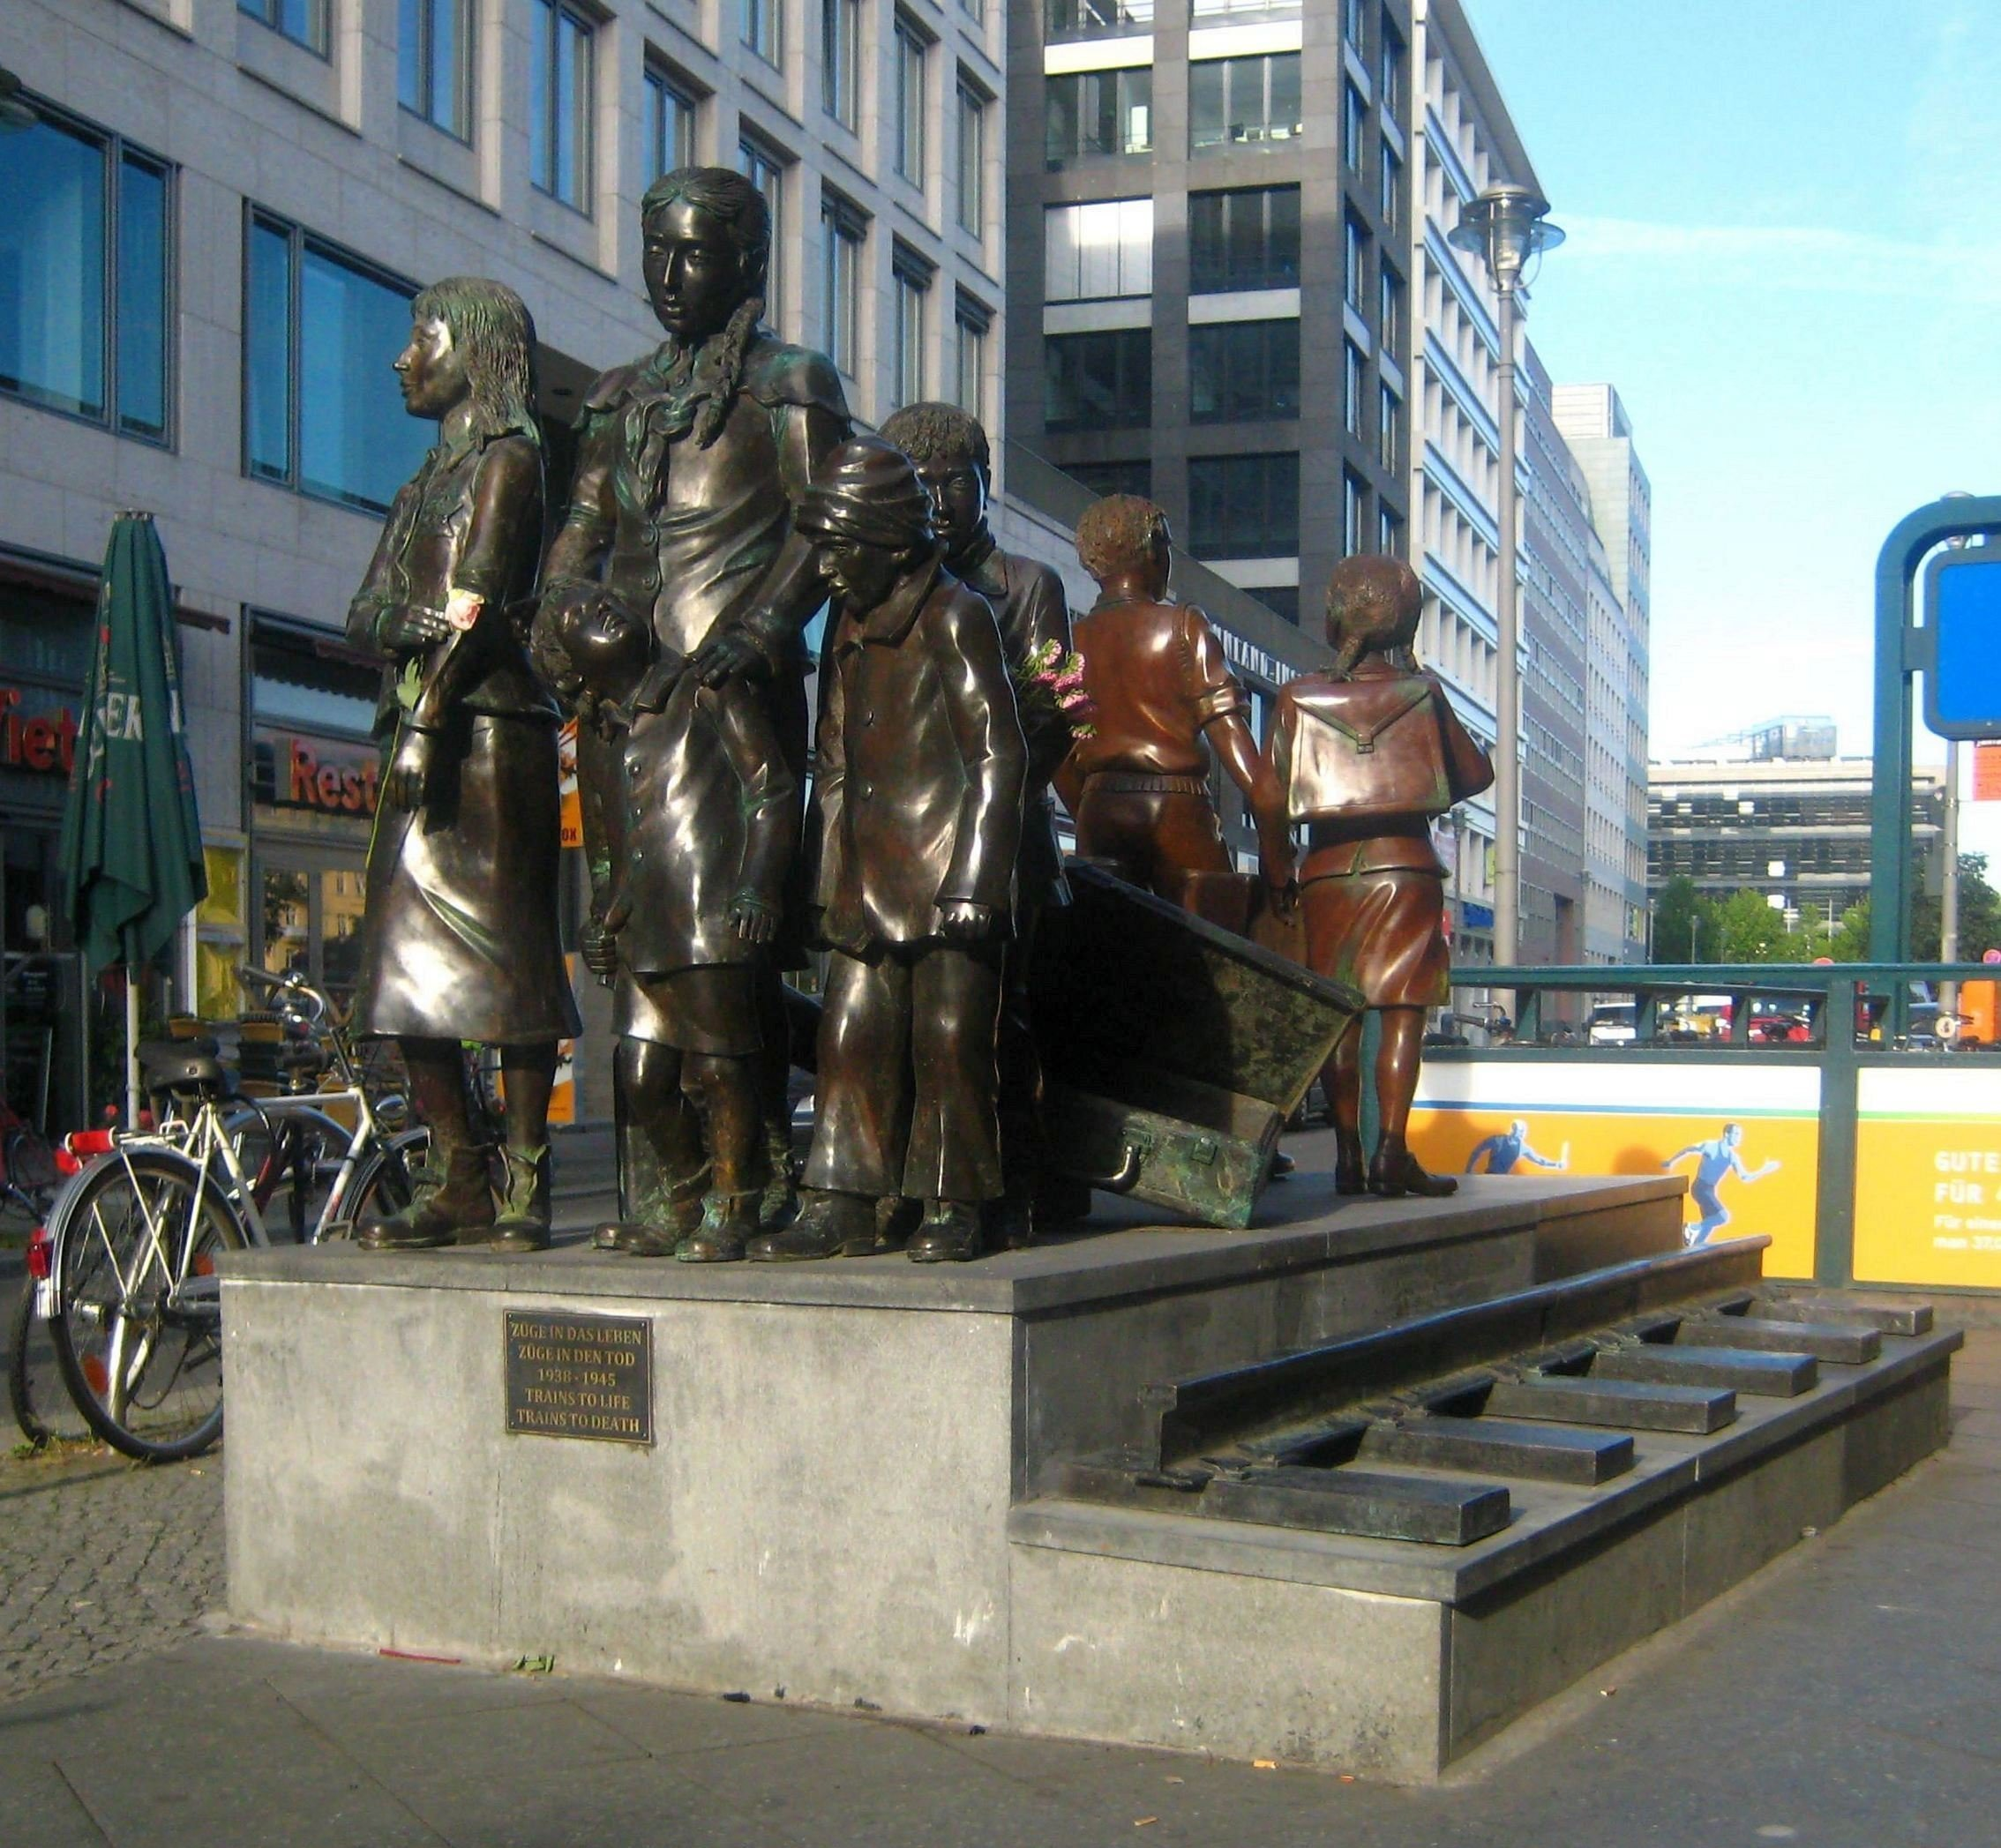 The memorial Trains to Life - Trains to death: 1938-1939 on the Dorothea-Schlegel-Platz at the Friedrichstraße Railway Station in Berlin-Mitte